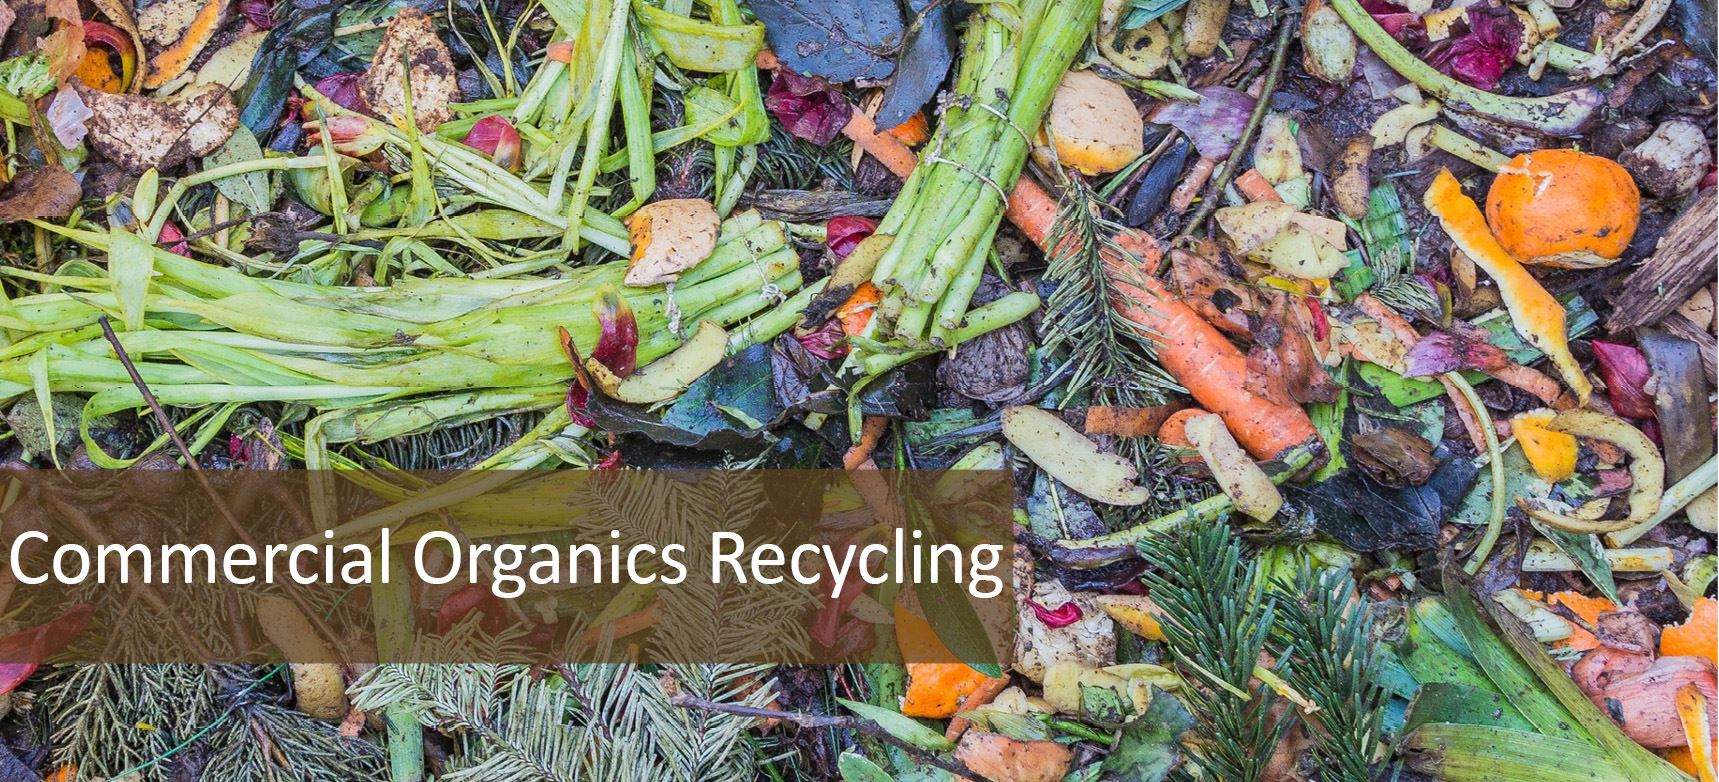 Commercial Organics Recycling